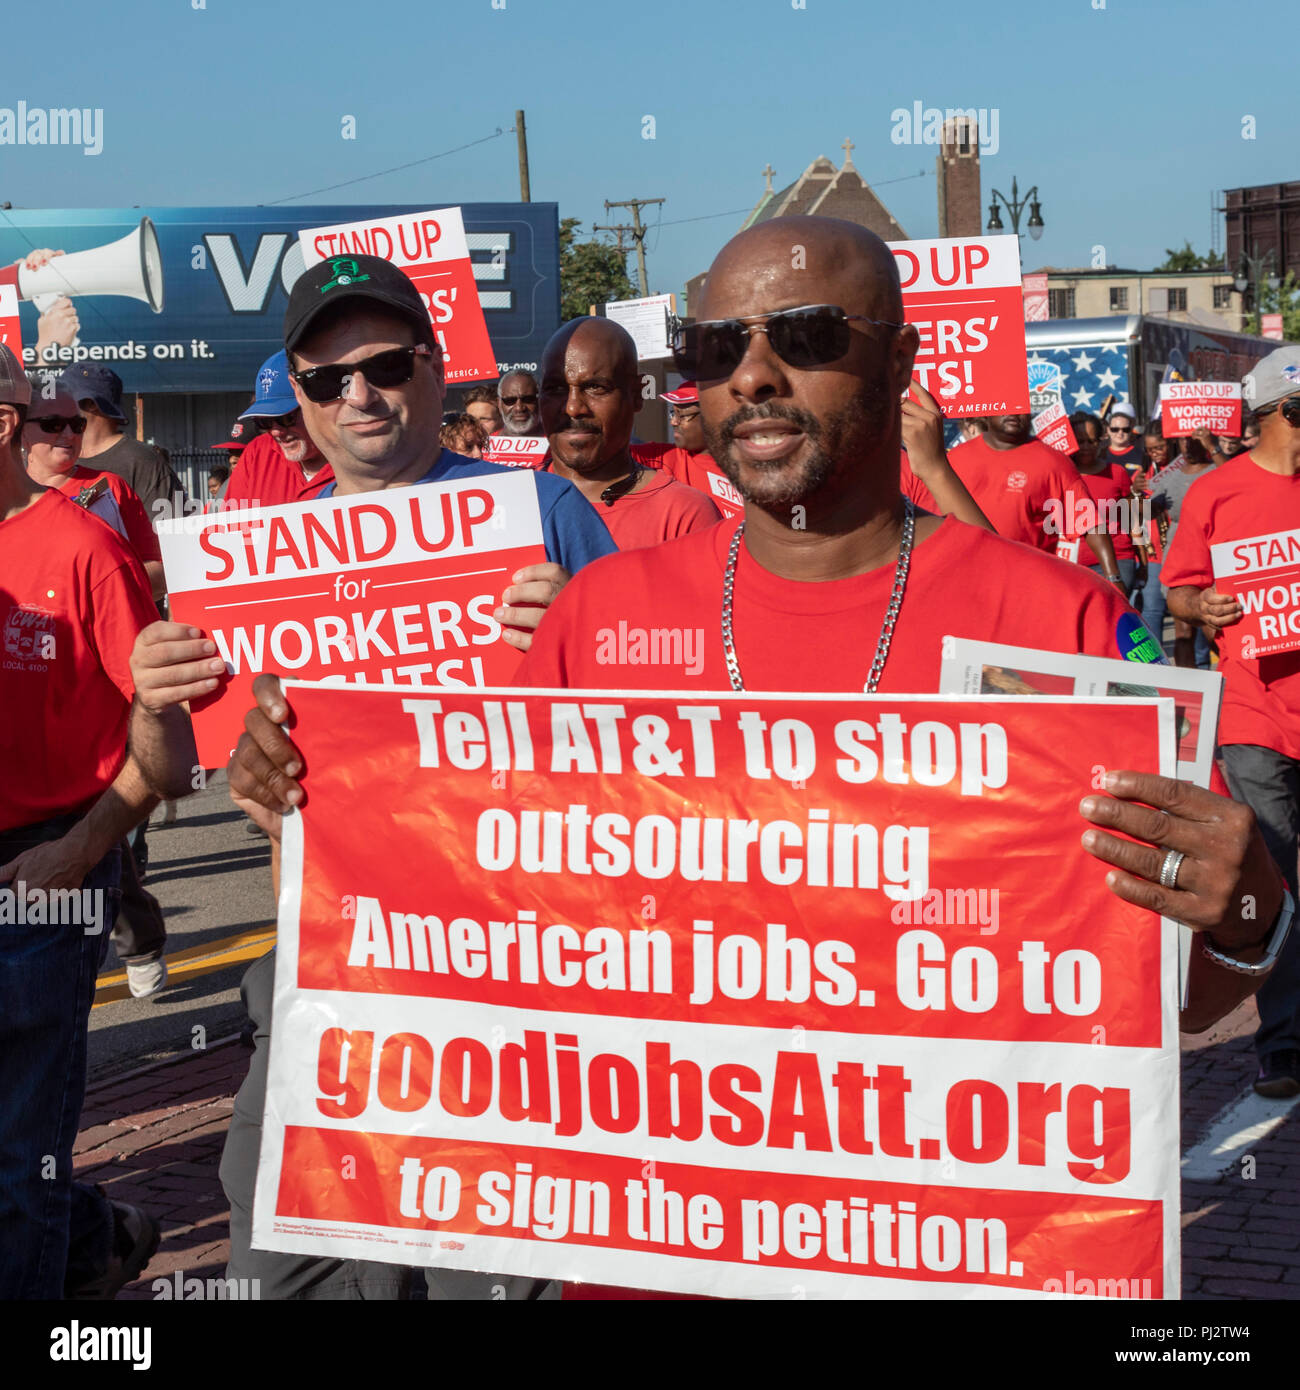 Detroit, Michigan - 3 September 2018 - Members of the Communications Workers of America join Detroit's Labor Day parade, campaigning for jobs at AT&T. - Stock Image